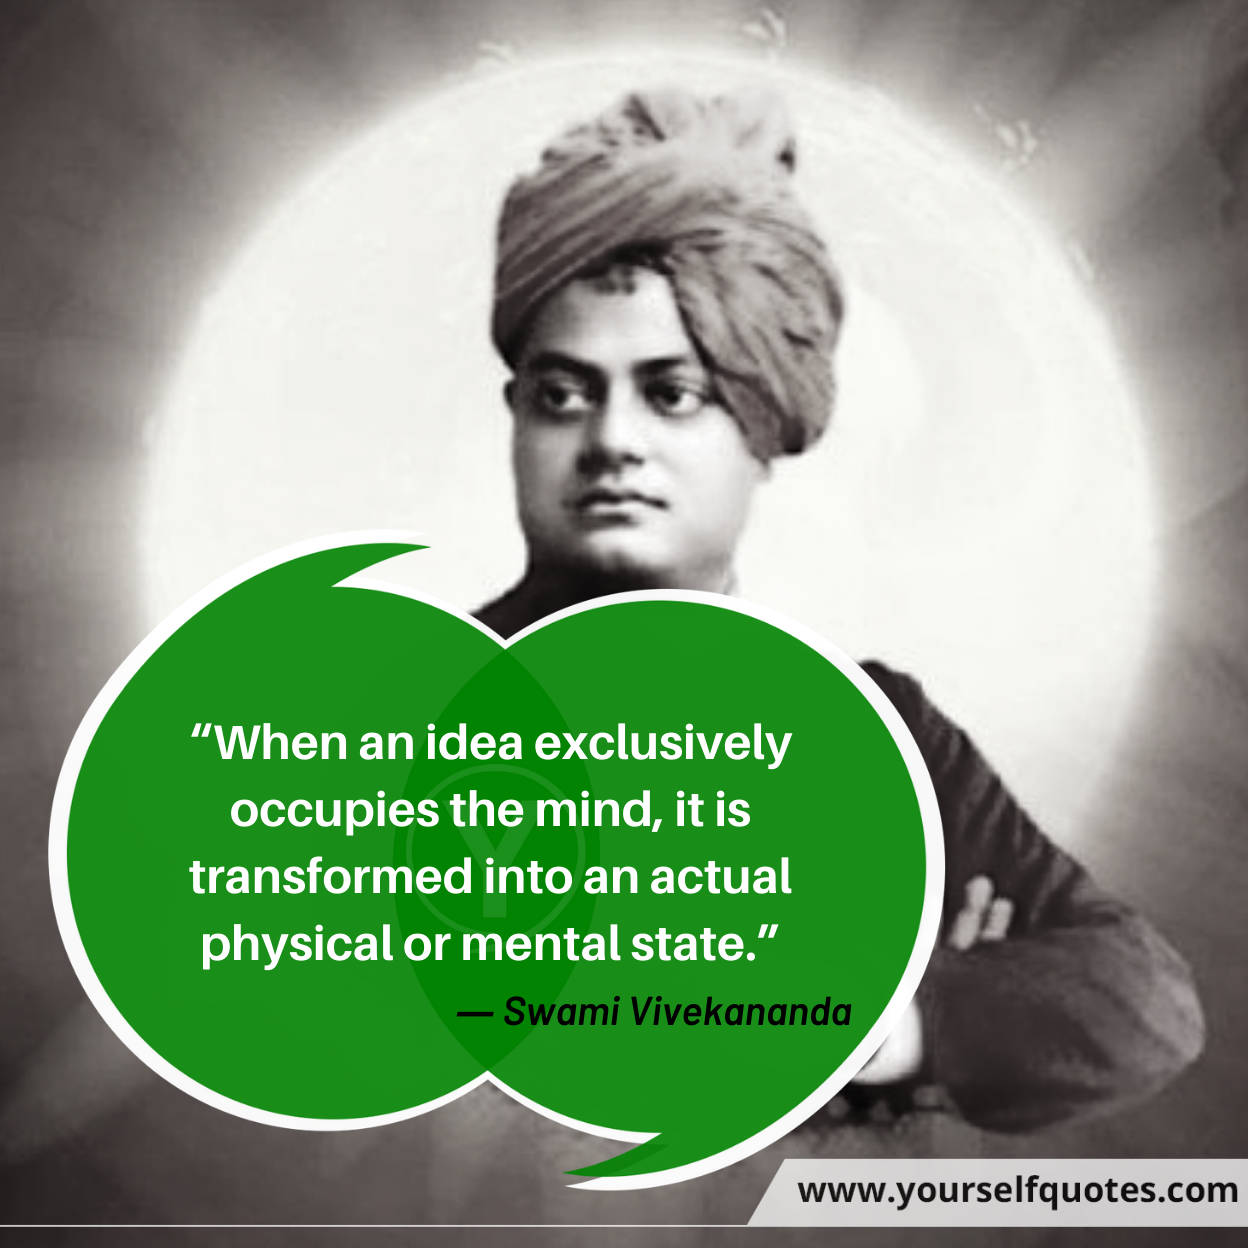 Vivekananda Famous Thoughts Quotes Images